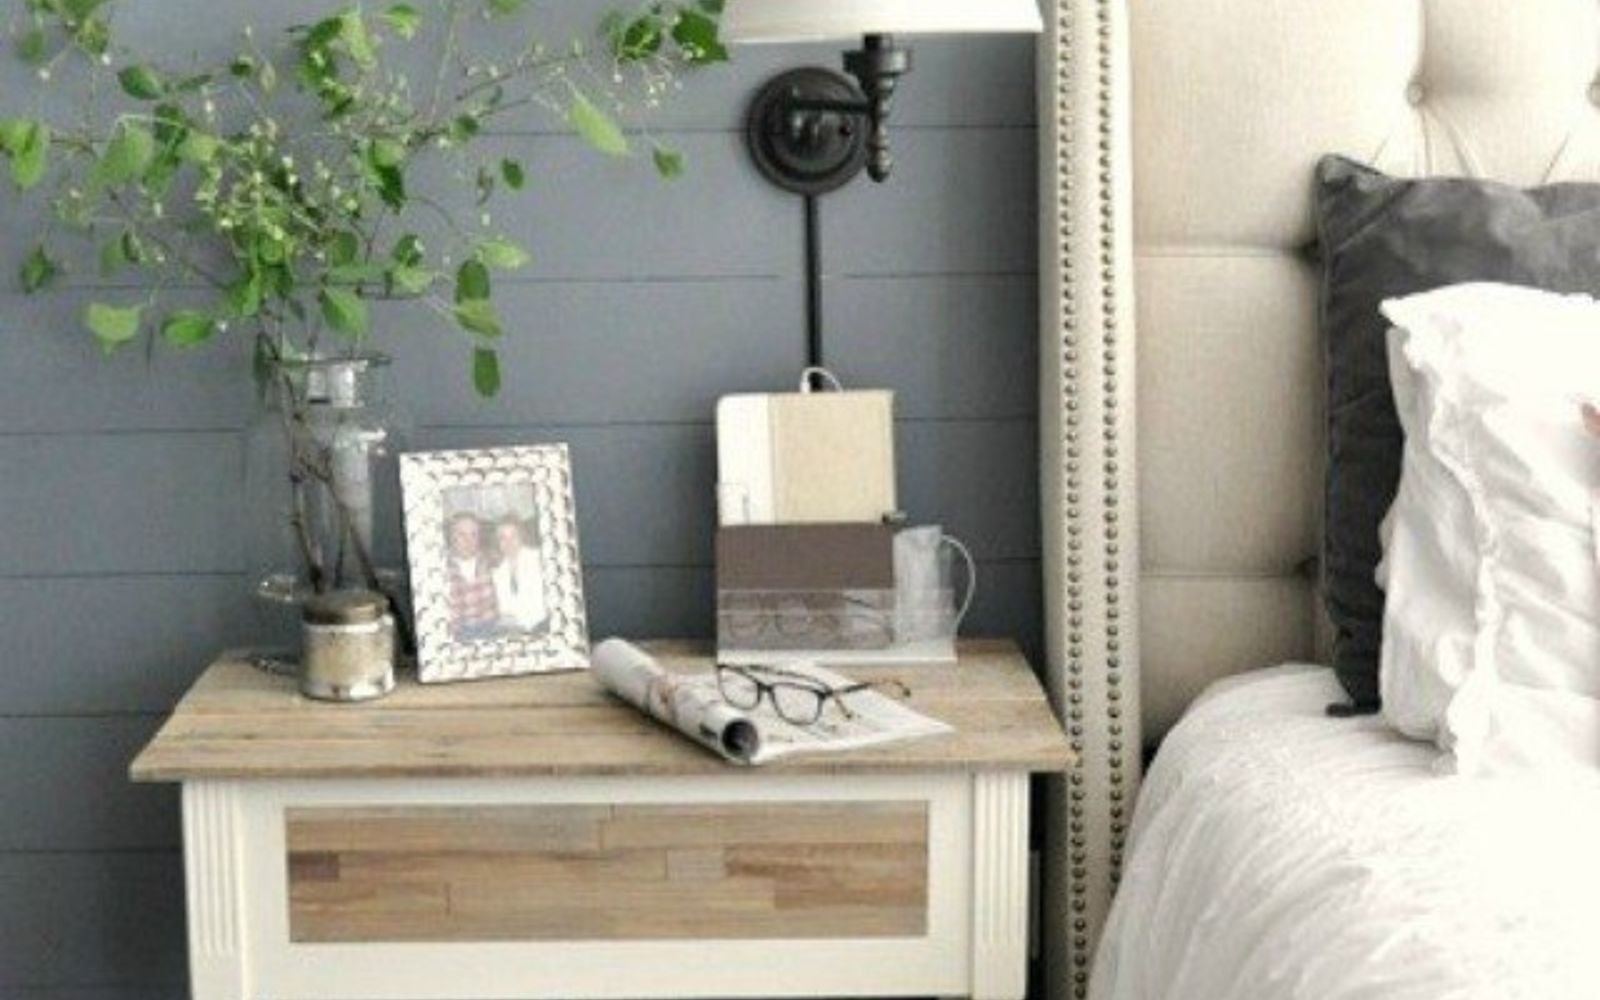 s 12 wildly creative ways to use your old sewing table, painted furniture, Or as a polished nightstand